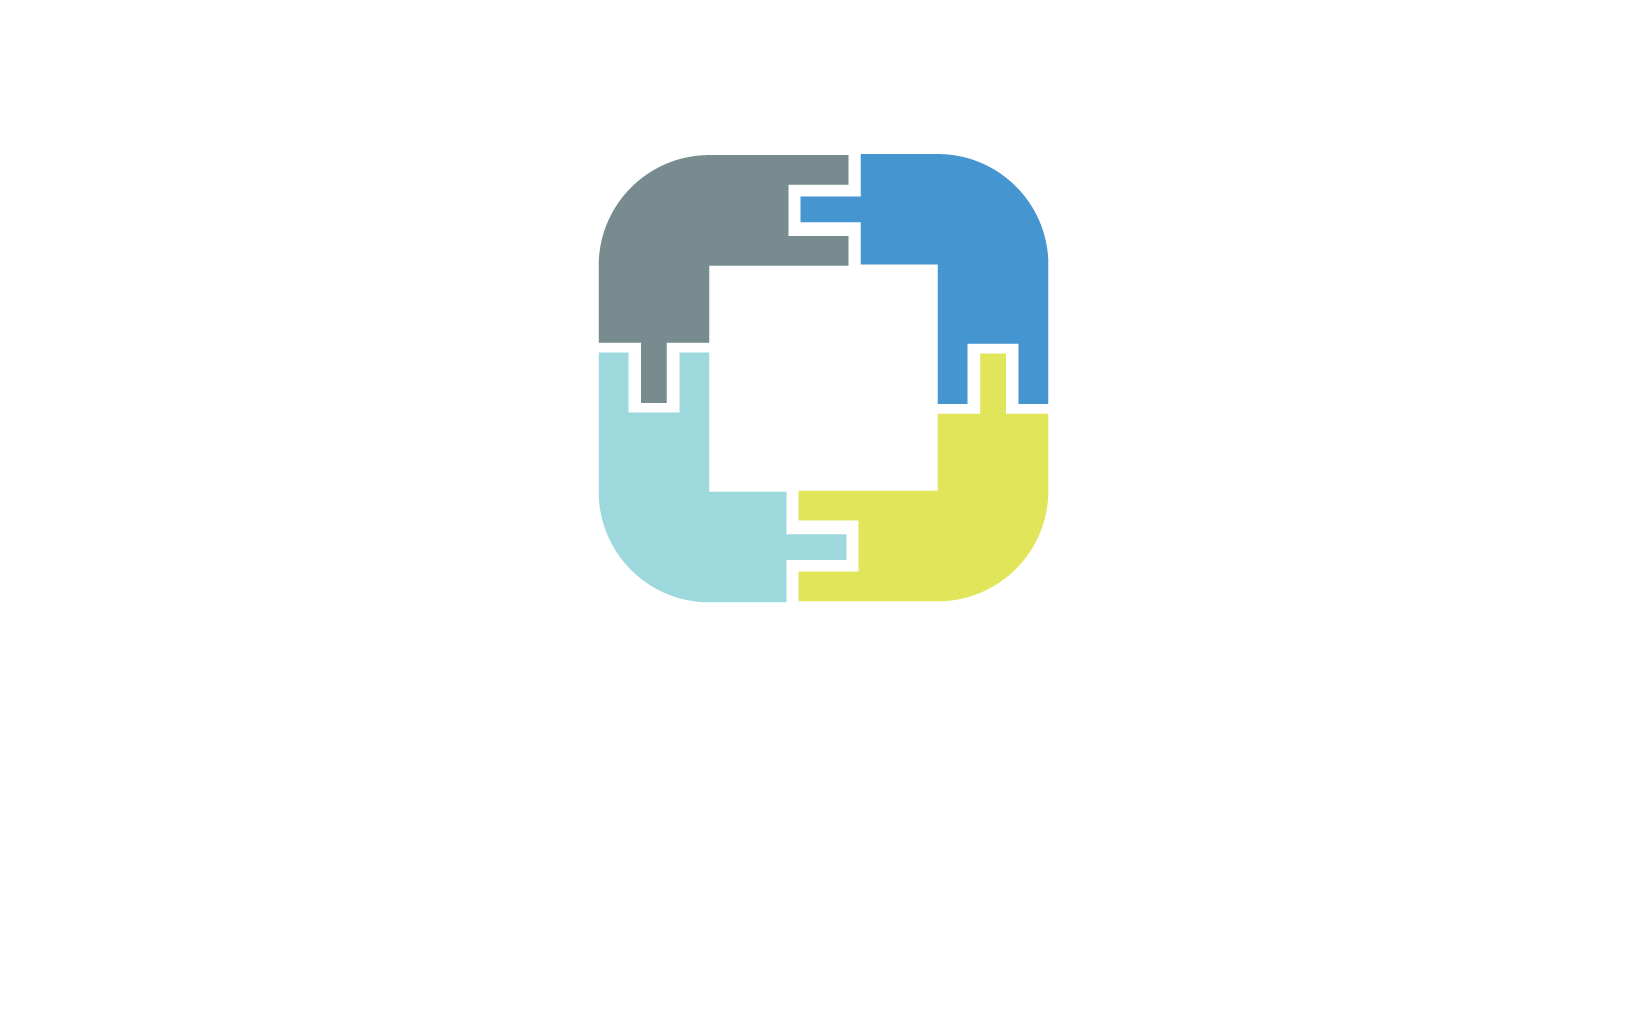 Feature_Part_of-Product_Logos_Task_Factory (1)